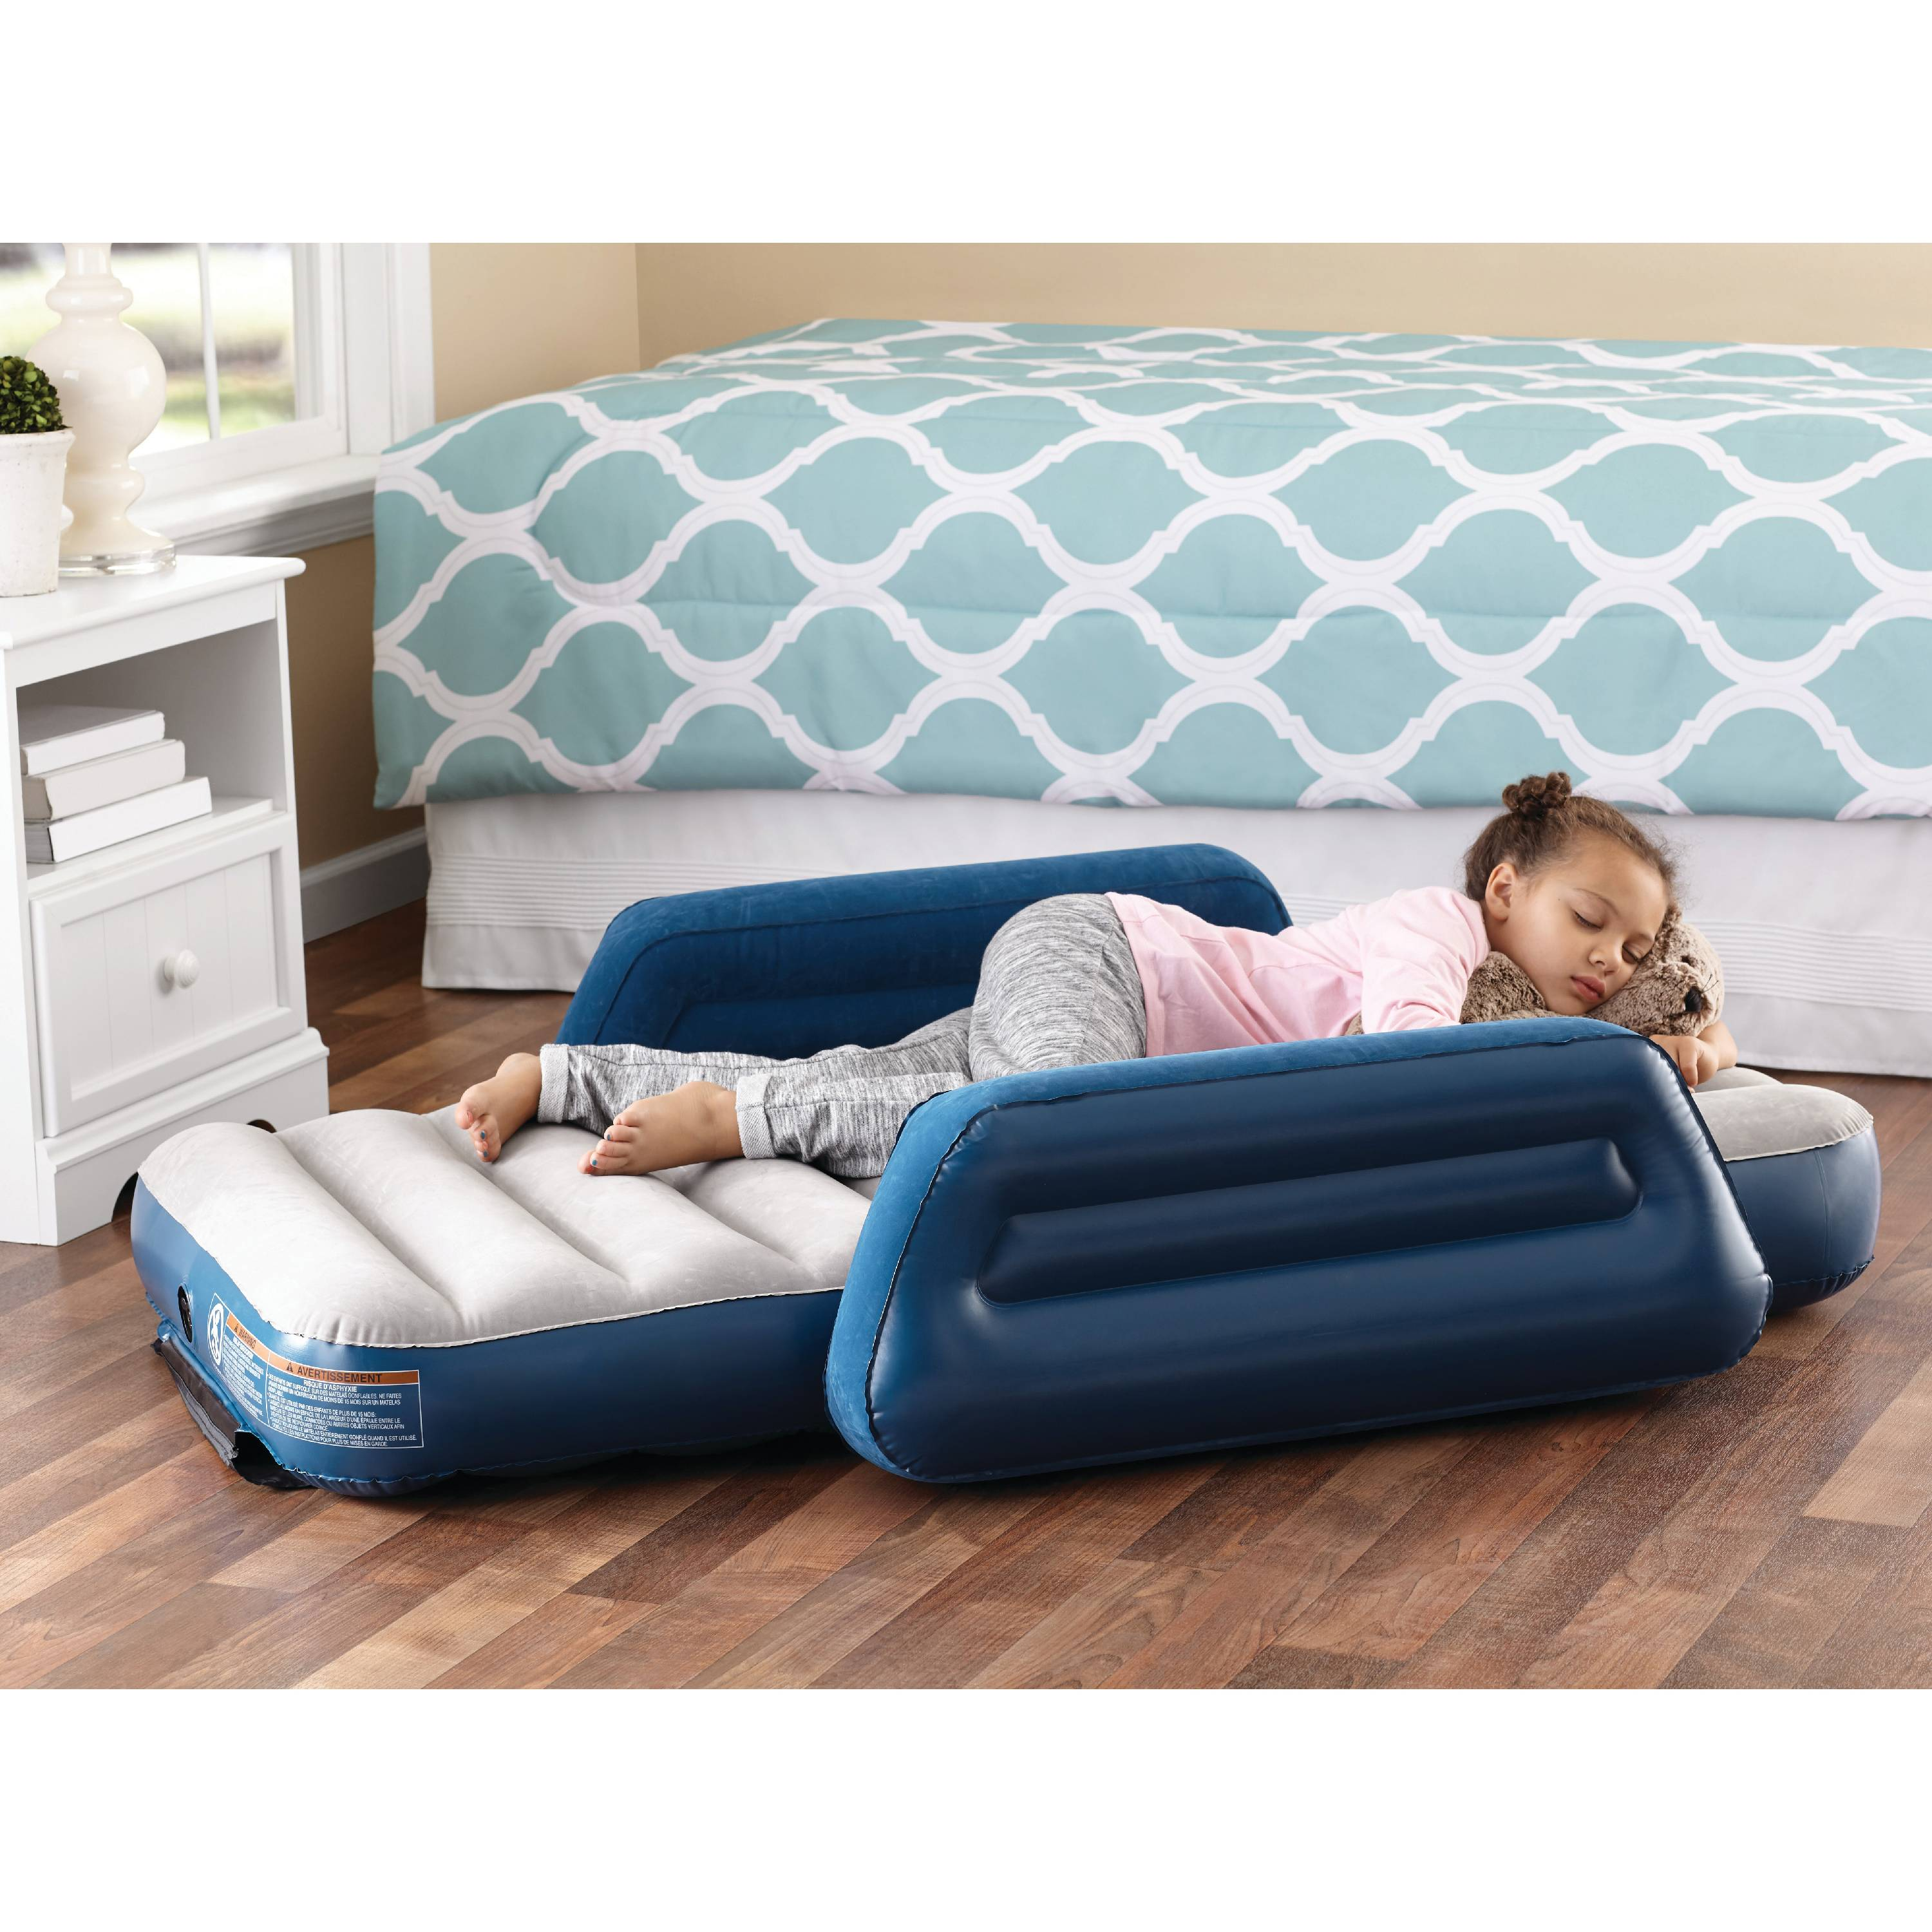 Ozark Trail Kids Camping Airbed With